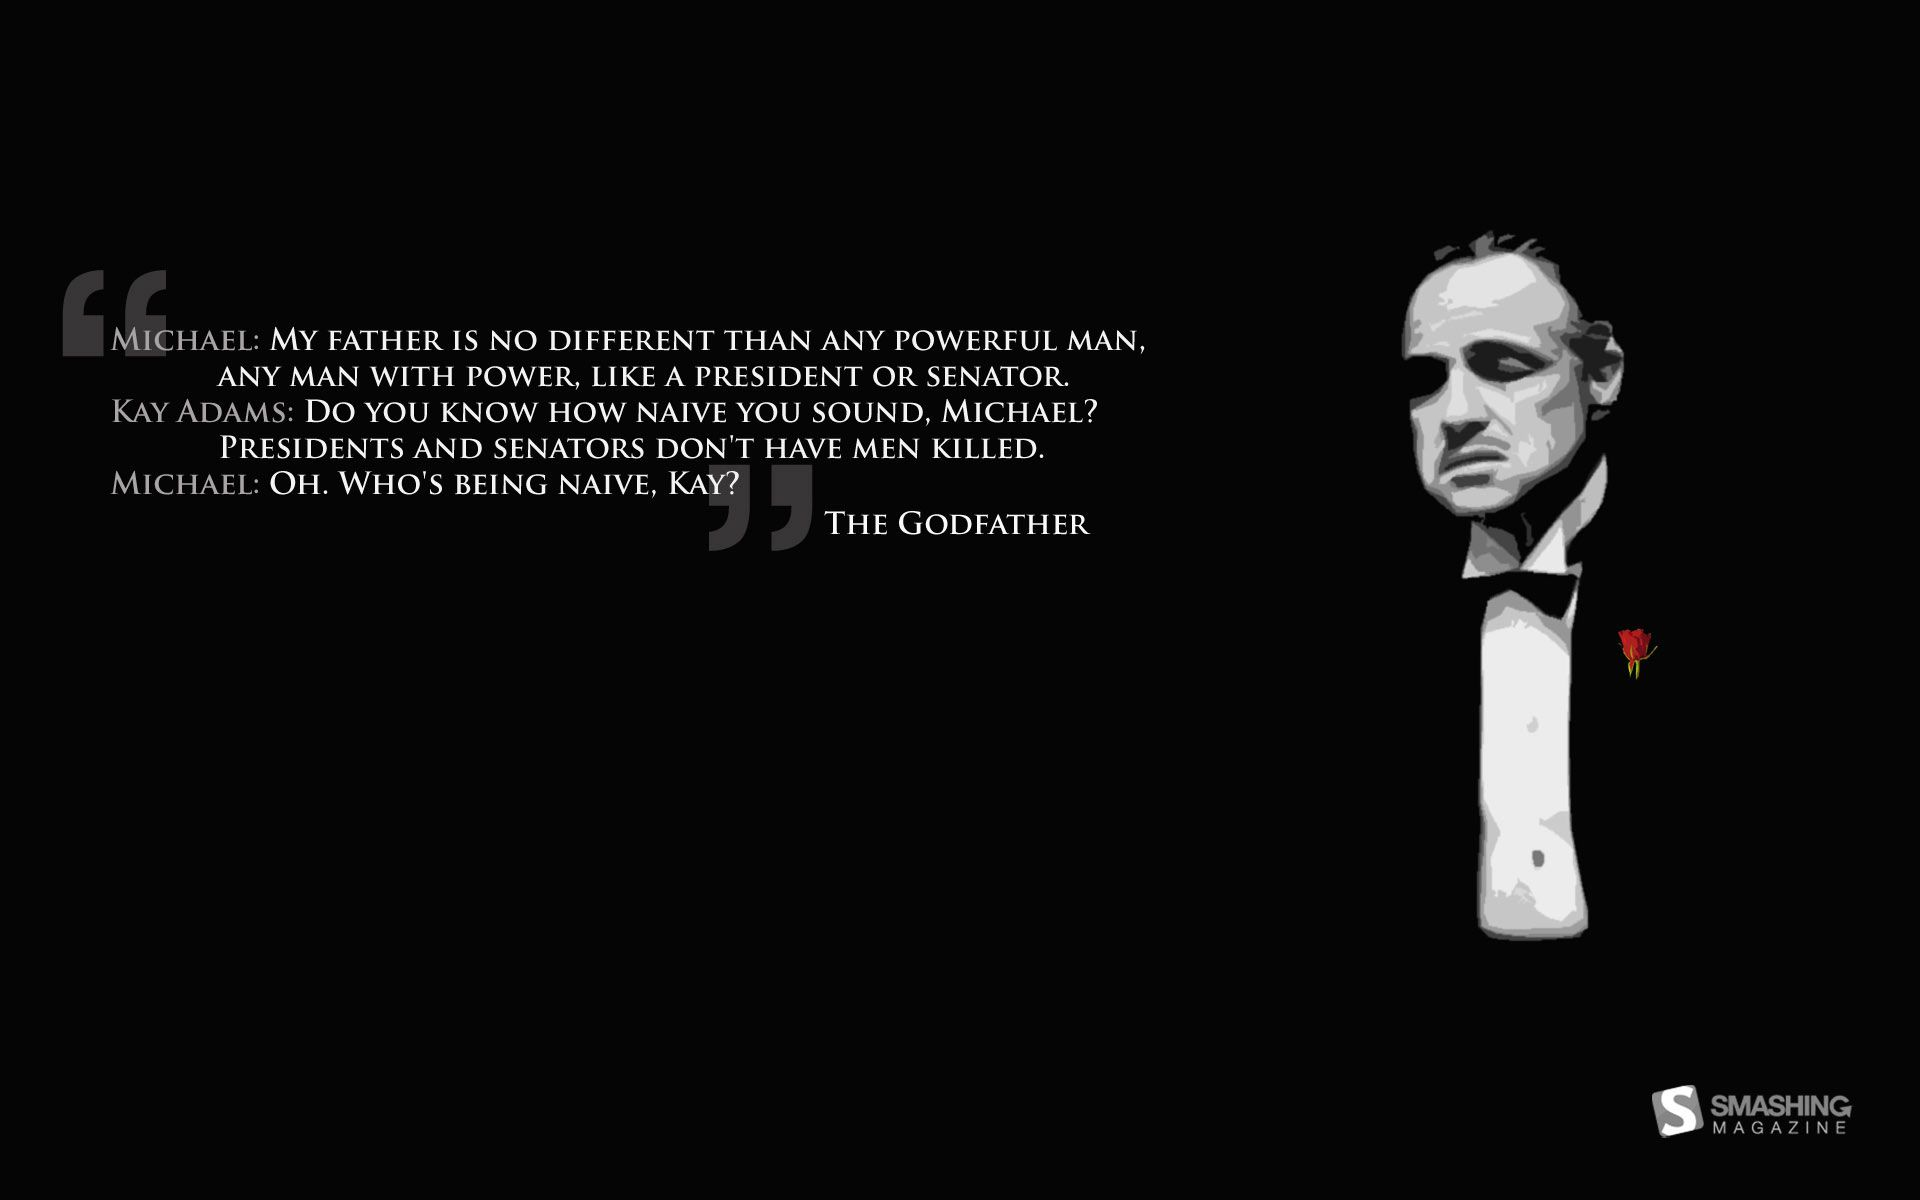 The Godfather Wallpaper Hd The Godfather Wallpaper The